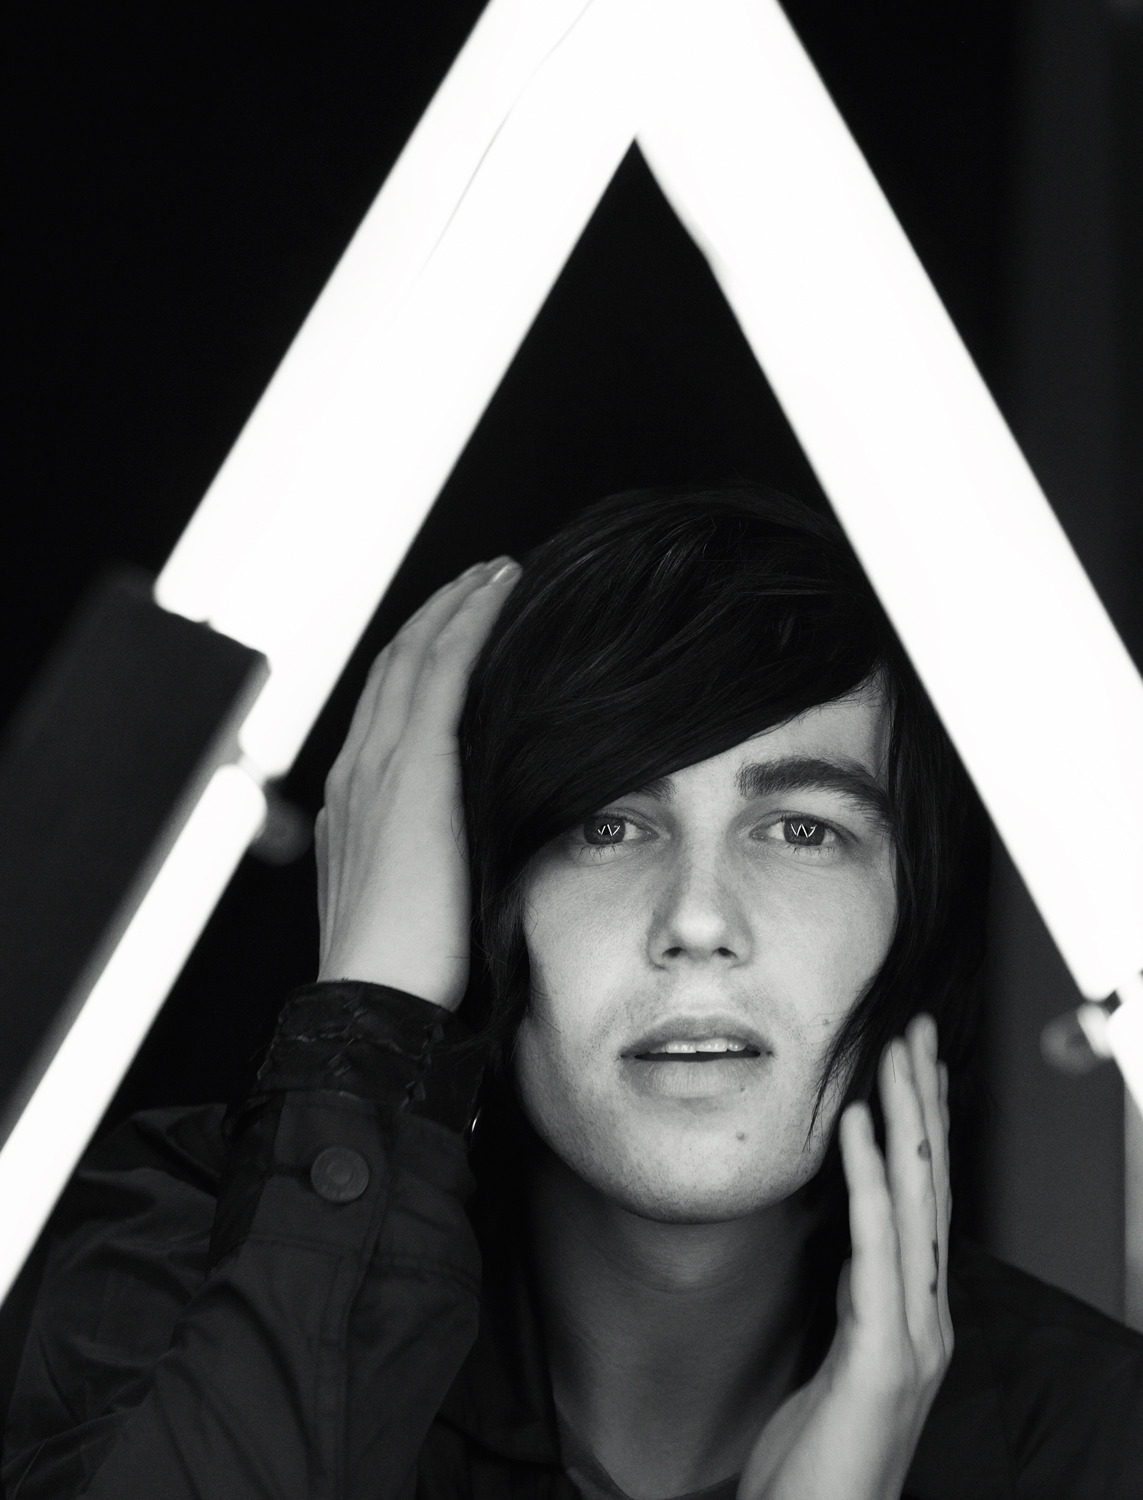 jonathanweiner:  Kellin Quinn of Sleeping With Sirens, Los Angeles 2012. This portrait was for theAugust AP #289, Warped Tour special. I built a special light for these portraits that leaves a catch light in the eyes in the shape of a W (for Warped).